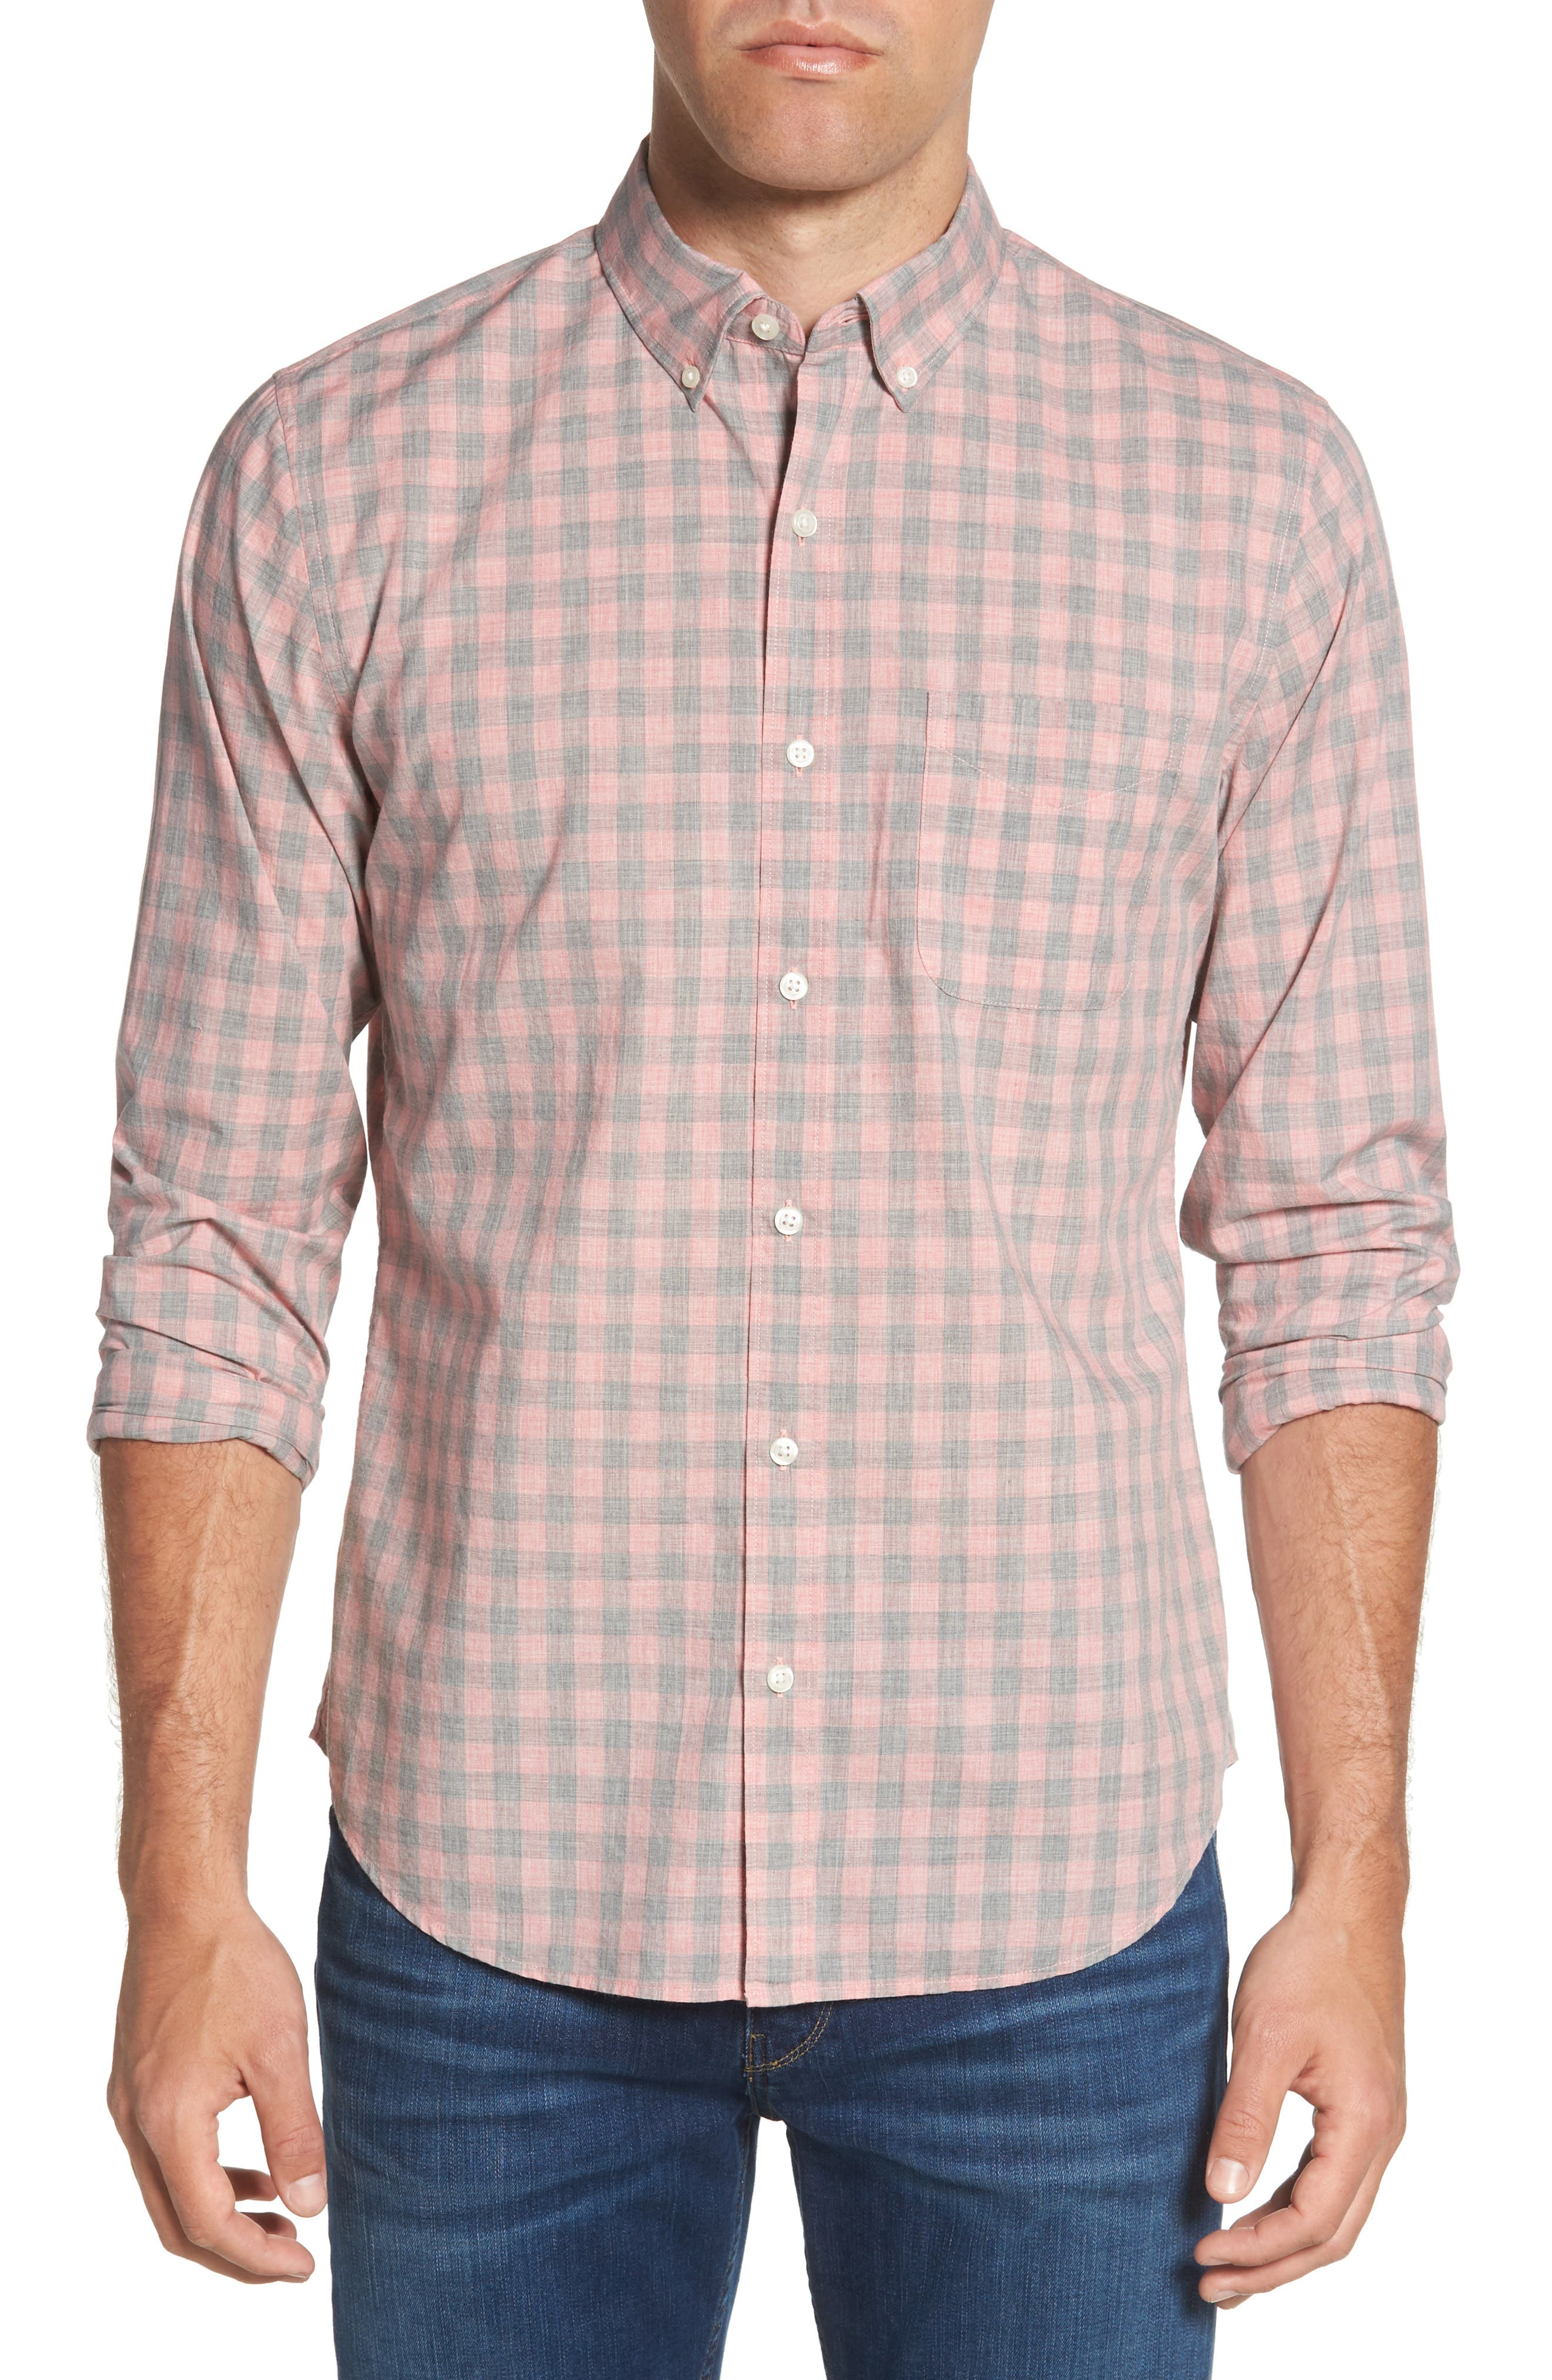 Summerweight Slim Fit Gingham Sport Shirt,                         Main,                         color, Pine Gingham - Heather Rose